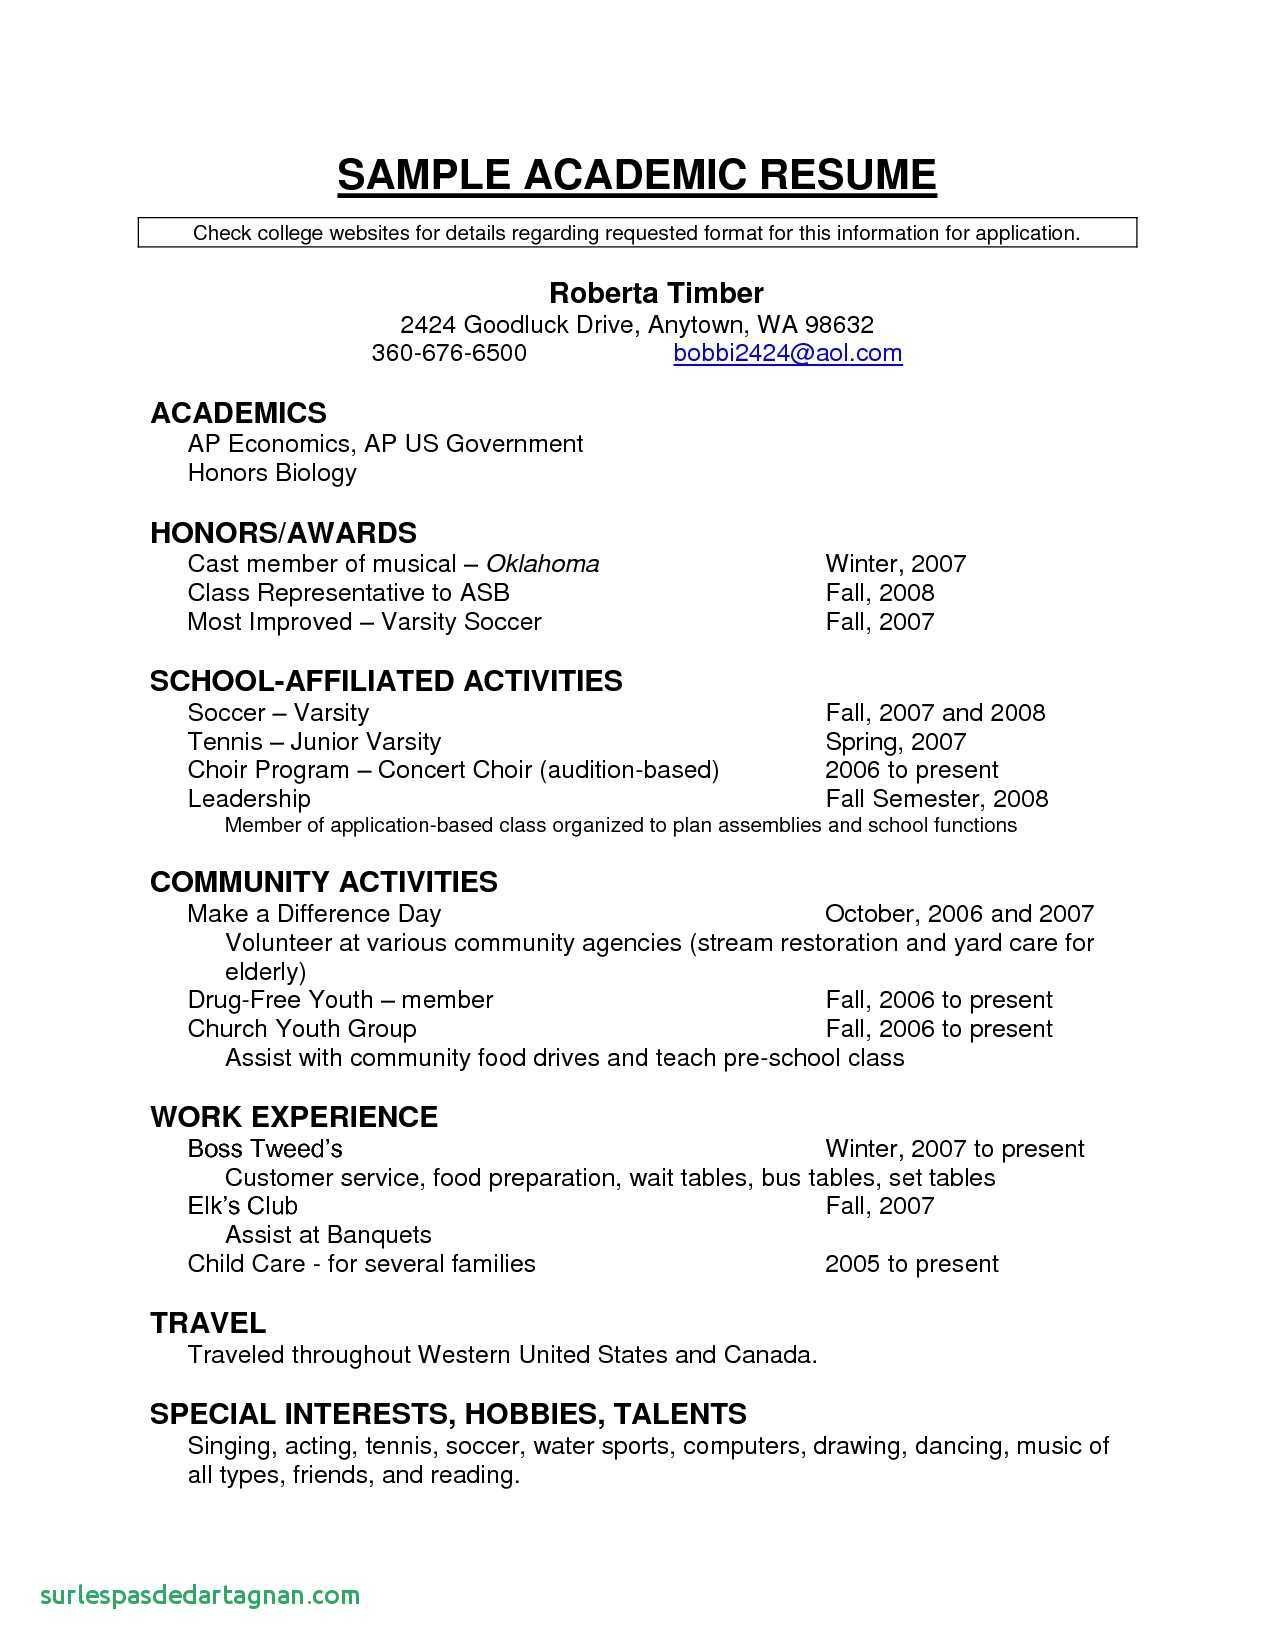 Resume Template for Kids - Student Resume Samples Inspirational Unique Resume for Highschool